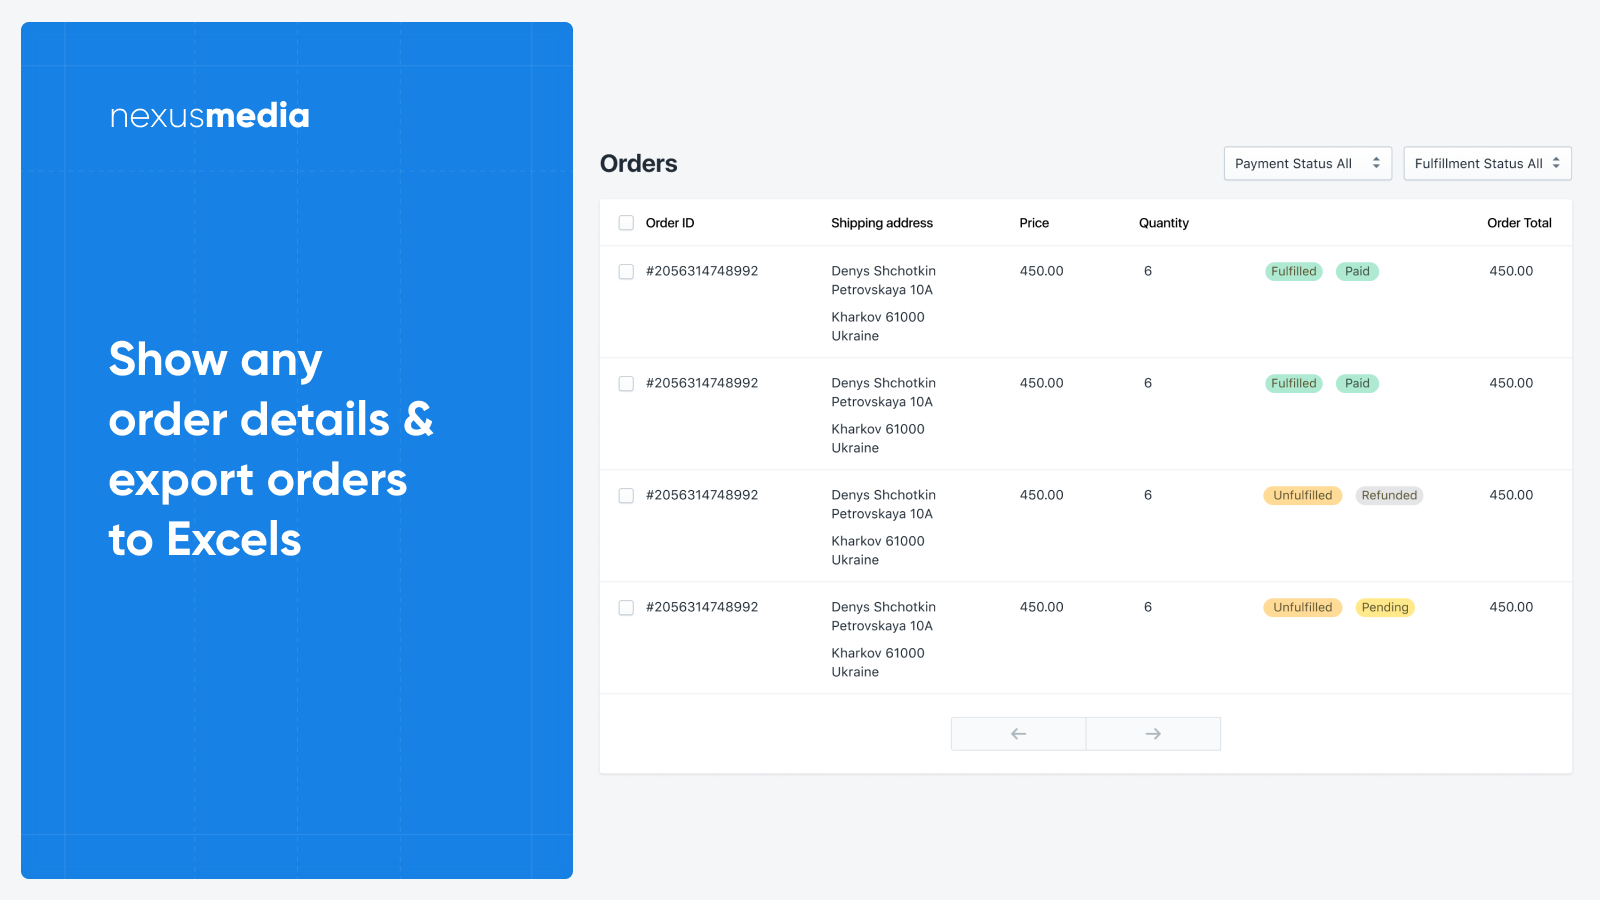 Show any order details & export orders to Excels, CSV, XLS